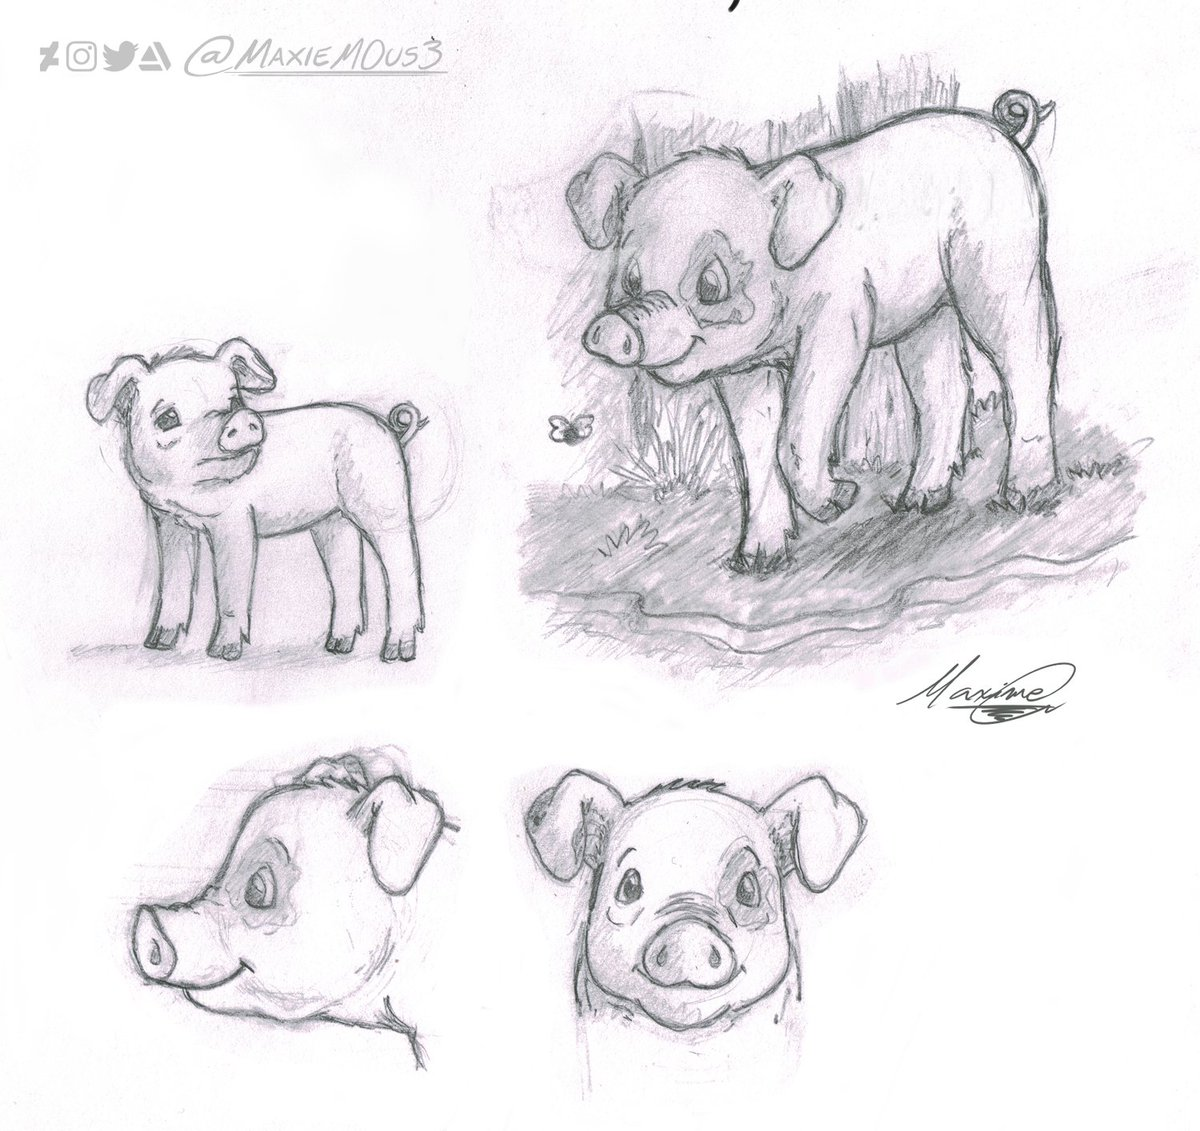 Here's a forgotten and dump character concept I made back in 2015. In this concept, I imagined a pig roaming the wilderness and facing some supernatural throughout its adventure.  #characterdesign #conceptart #art #sketch #traditionalart #animal #feral #artist #artistsontwitter https://t.co/xttOZeuIDT